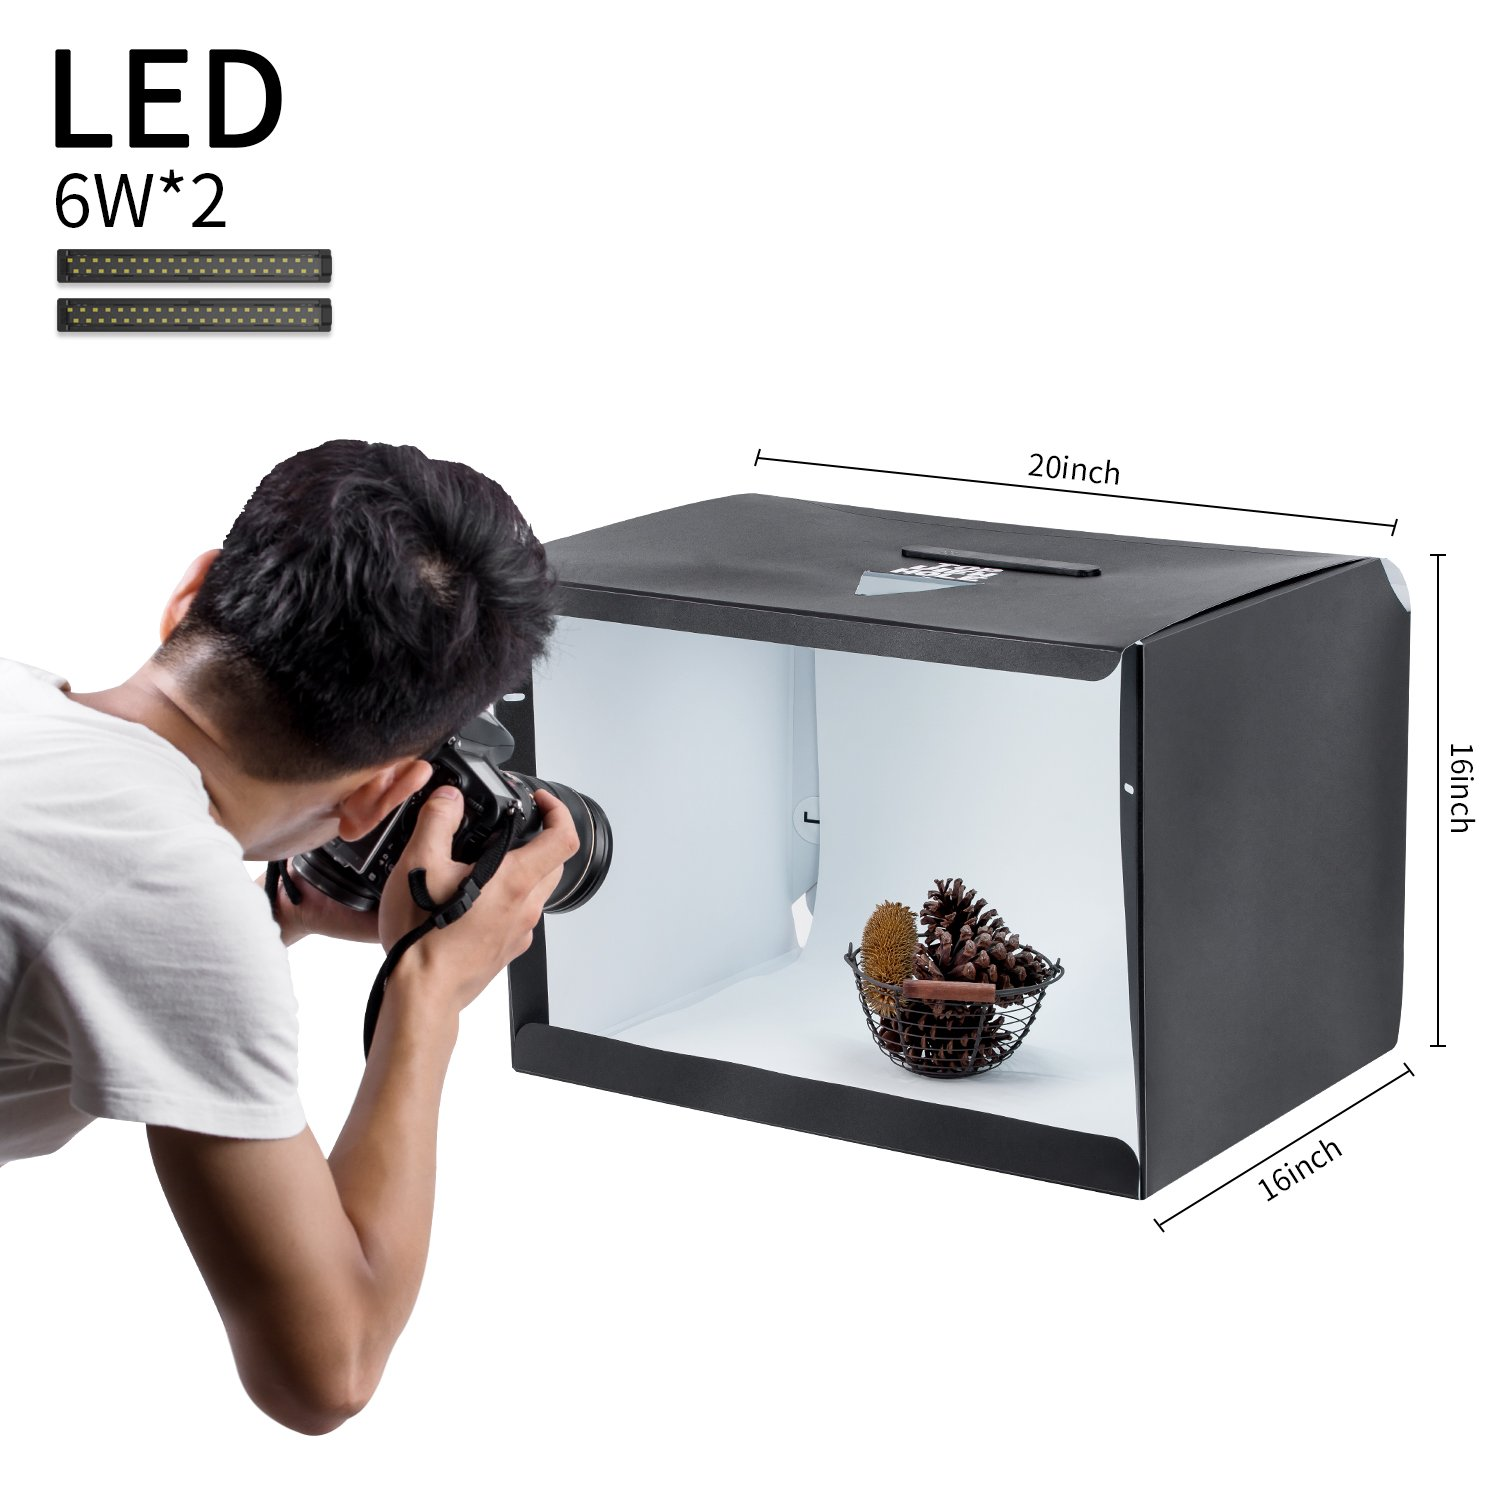 Slowbeat Portable Photo Studio 20''x16''x16'' Shooting Tent Box Kit with Adjustable LED Lights for Product Photography Box, Product Review at home and office by Slowbeat